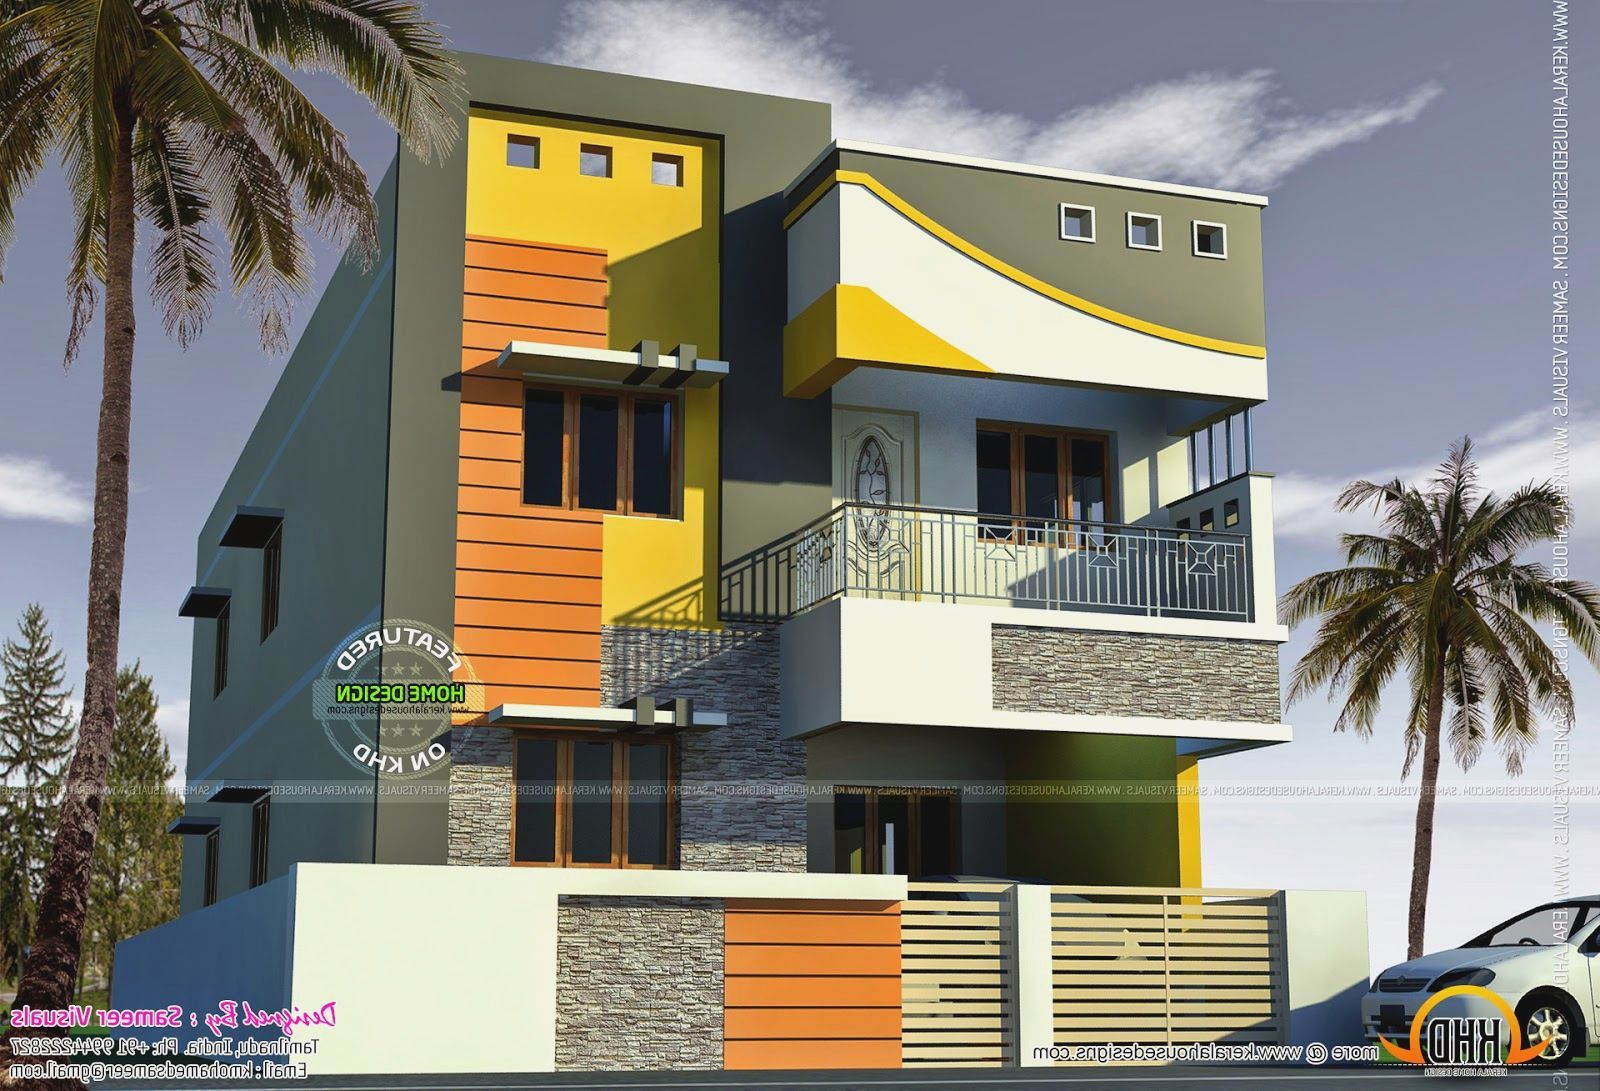 Tamilnadu house models more picture tamilnadu house models for Home front design model